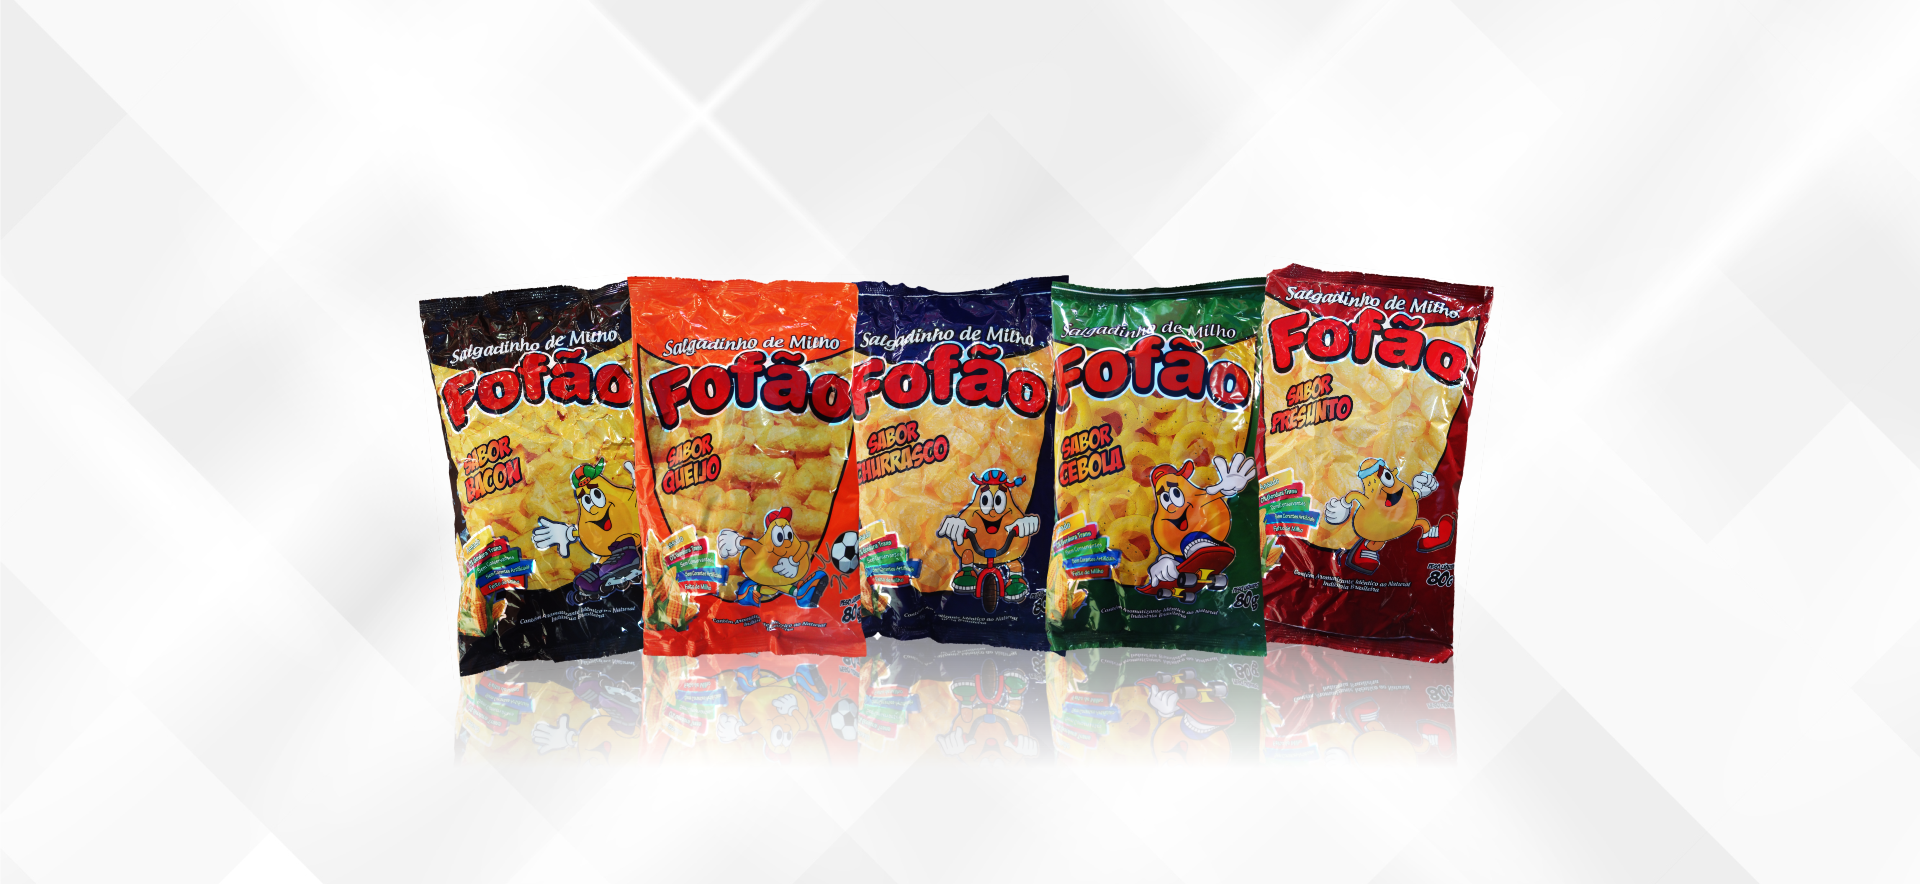 Good Snacks Banner Fofão